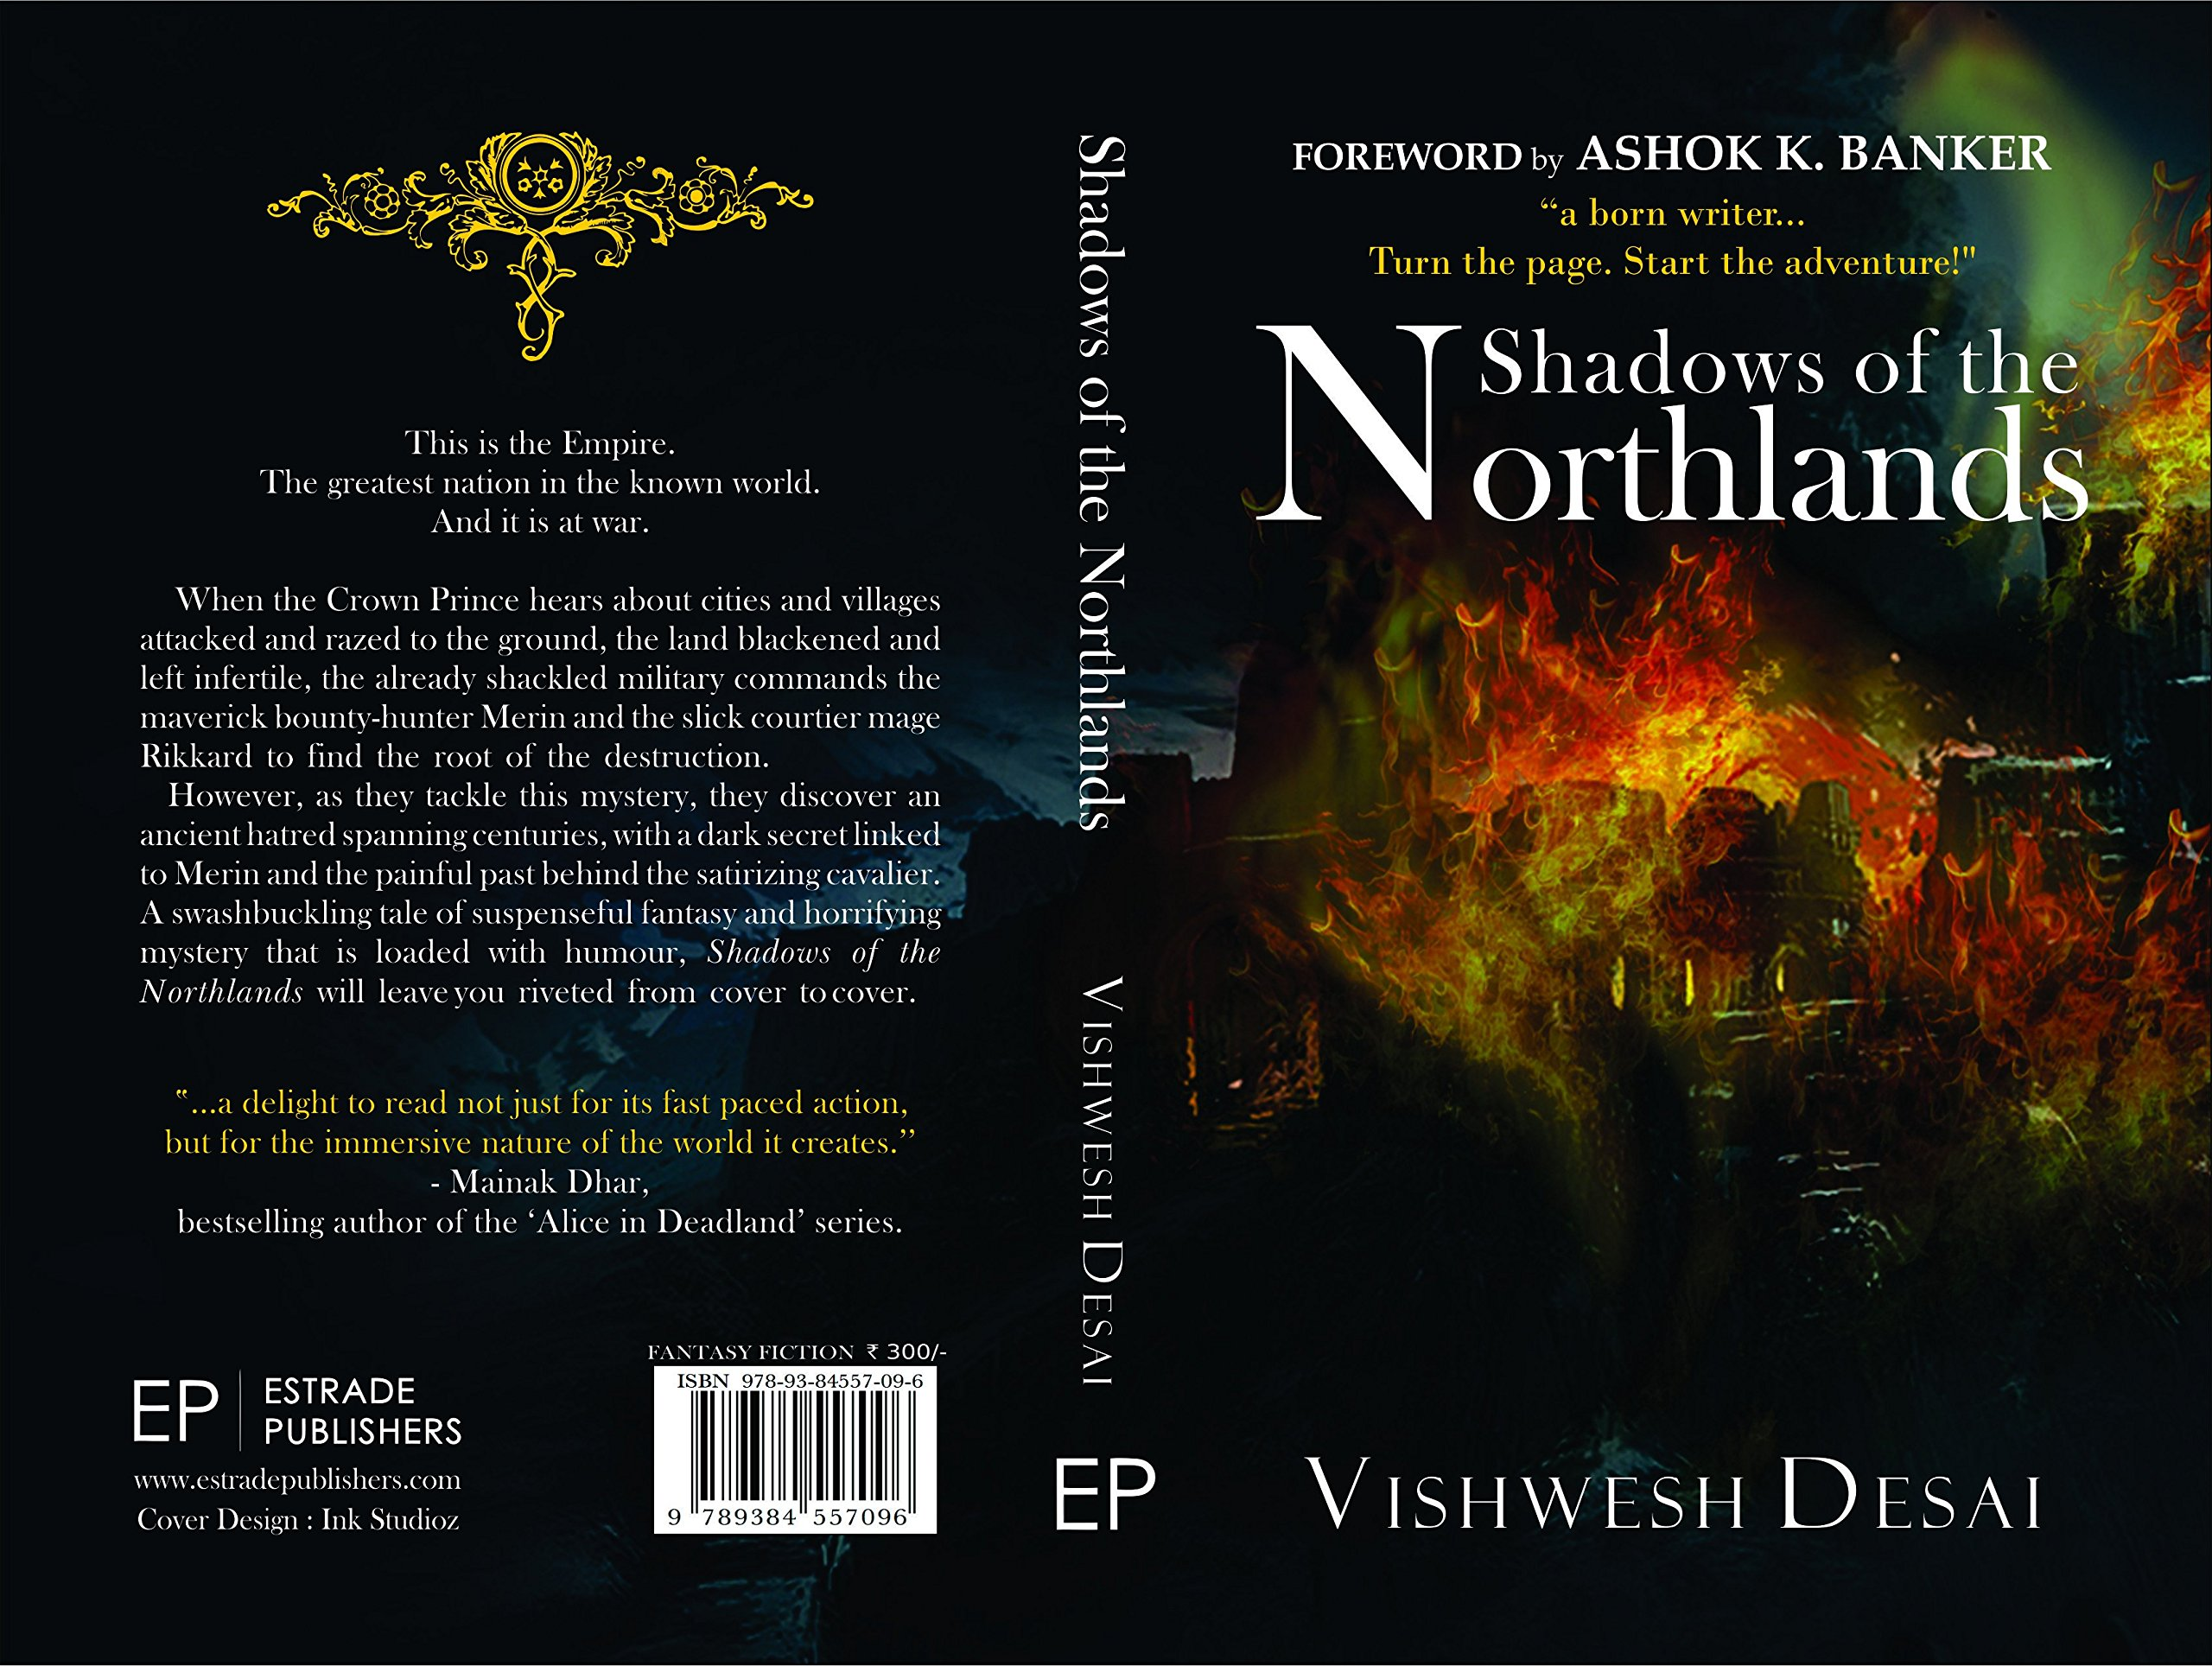 Buy Shadows Of The Northlands Book Online At Low Prices In India  Shadows  Of The Northlands Reviews & Ratings  Amazon